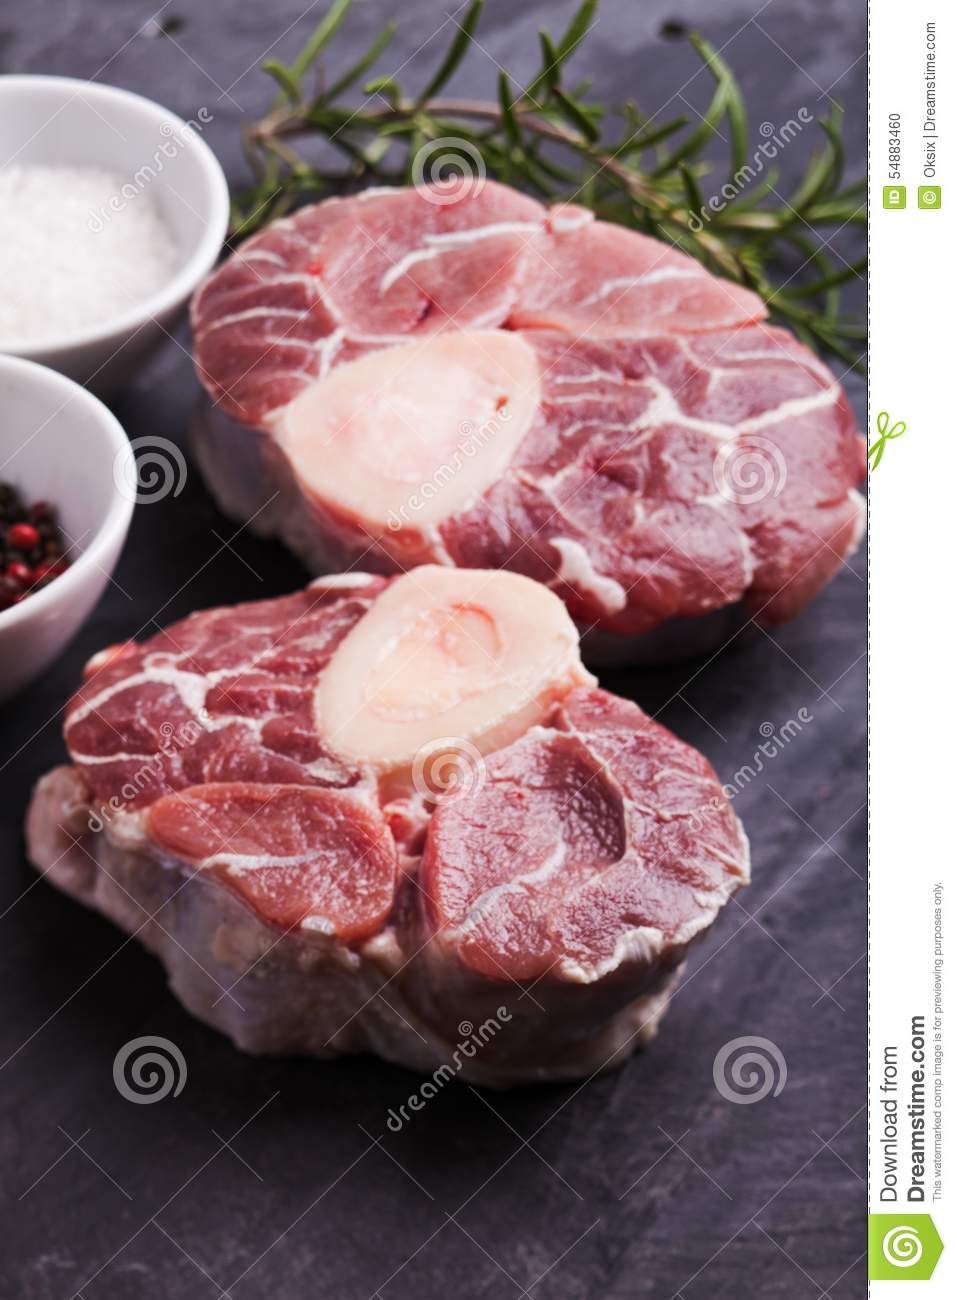 Cross Cut Veal Shank Stock Photo.